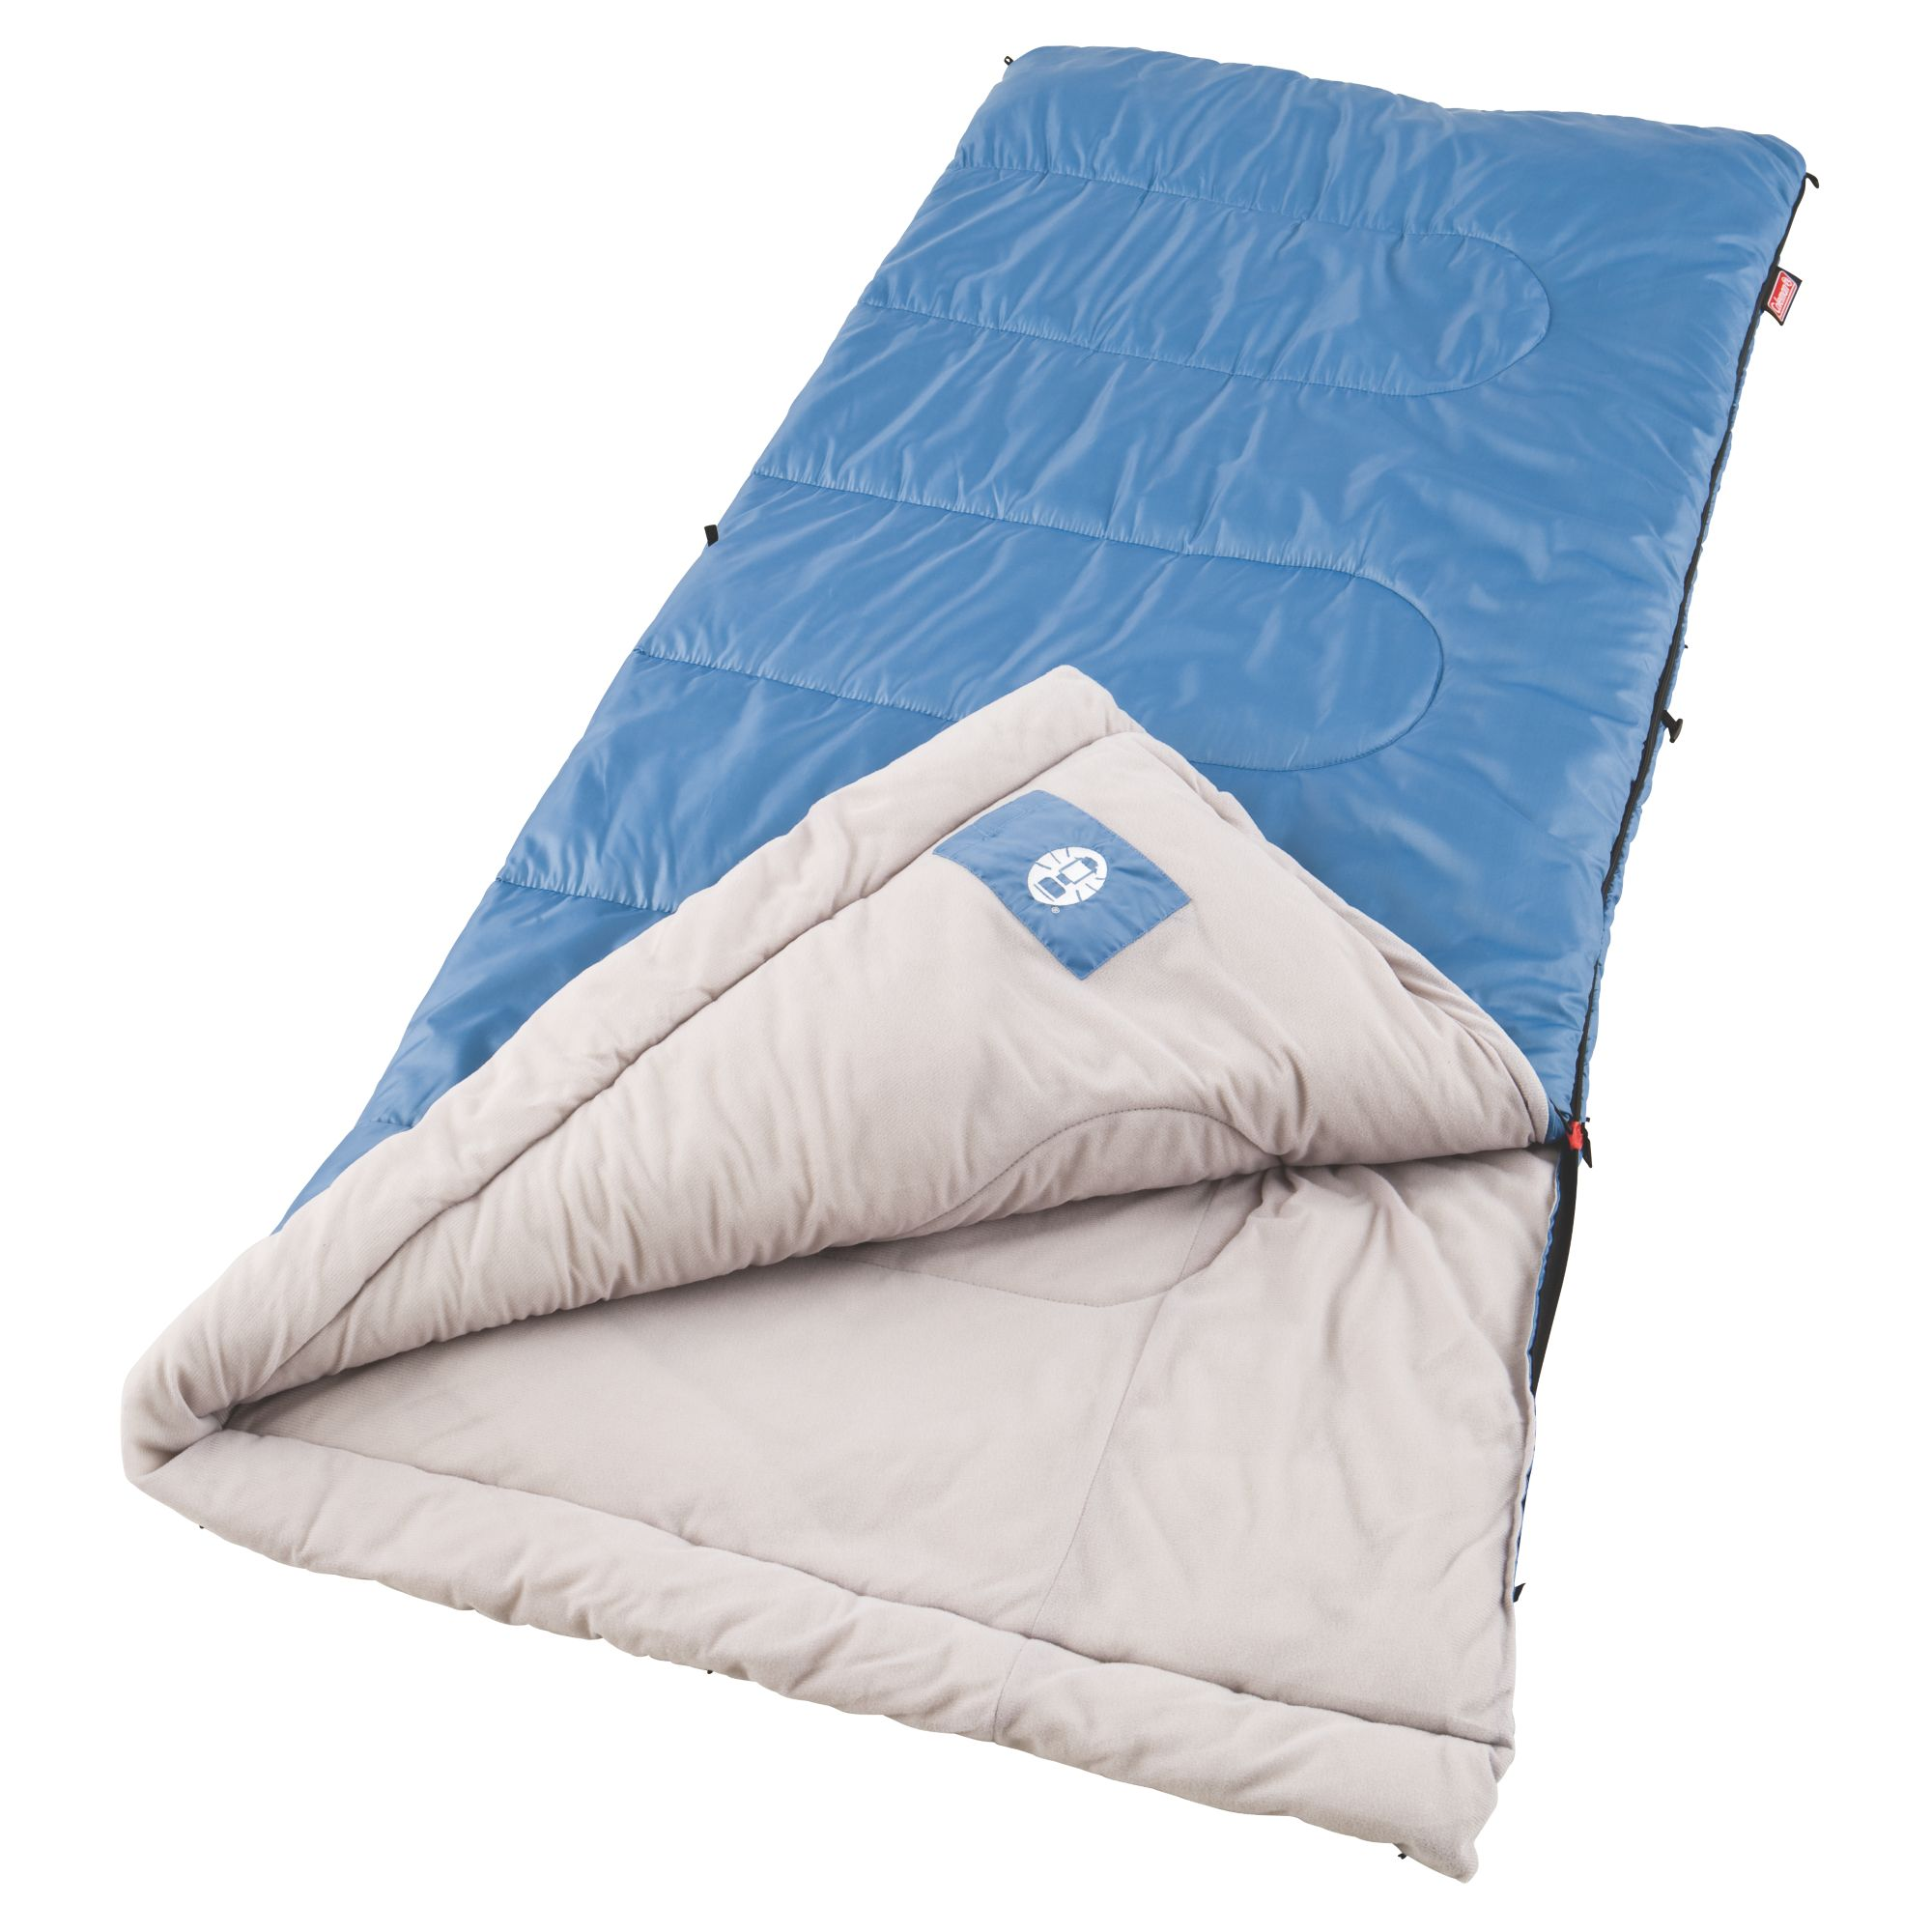 Sun RidgeTM Sleeping Bag